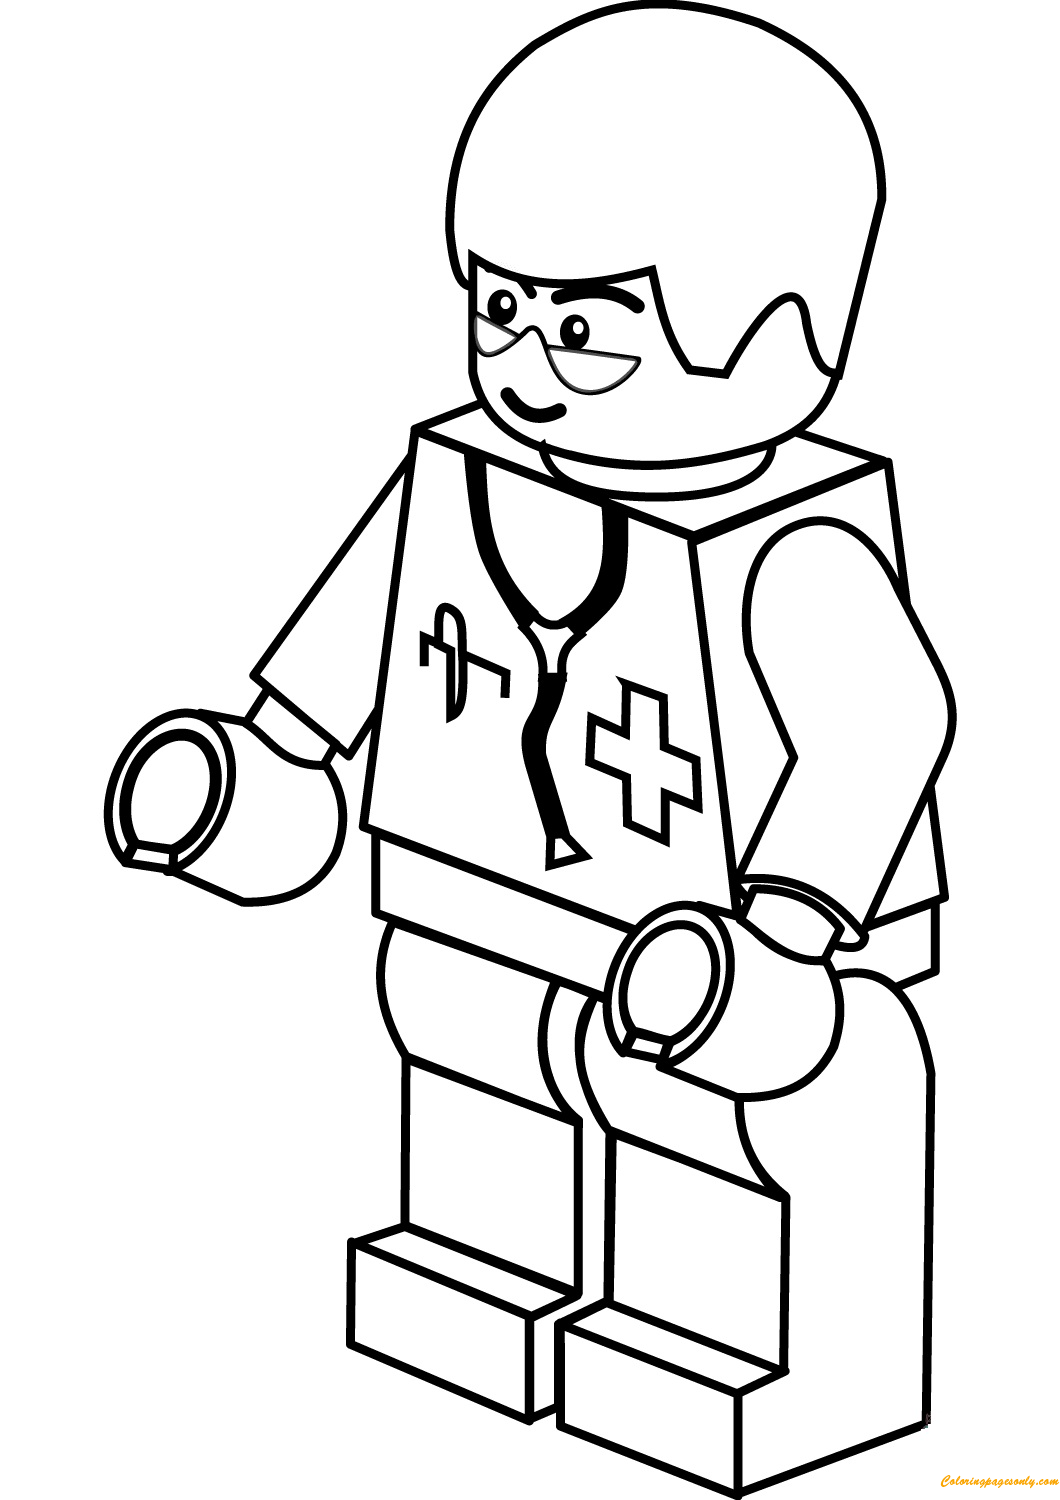 Lego City Doctor Man Coloring Page